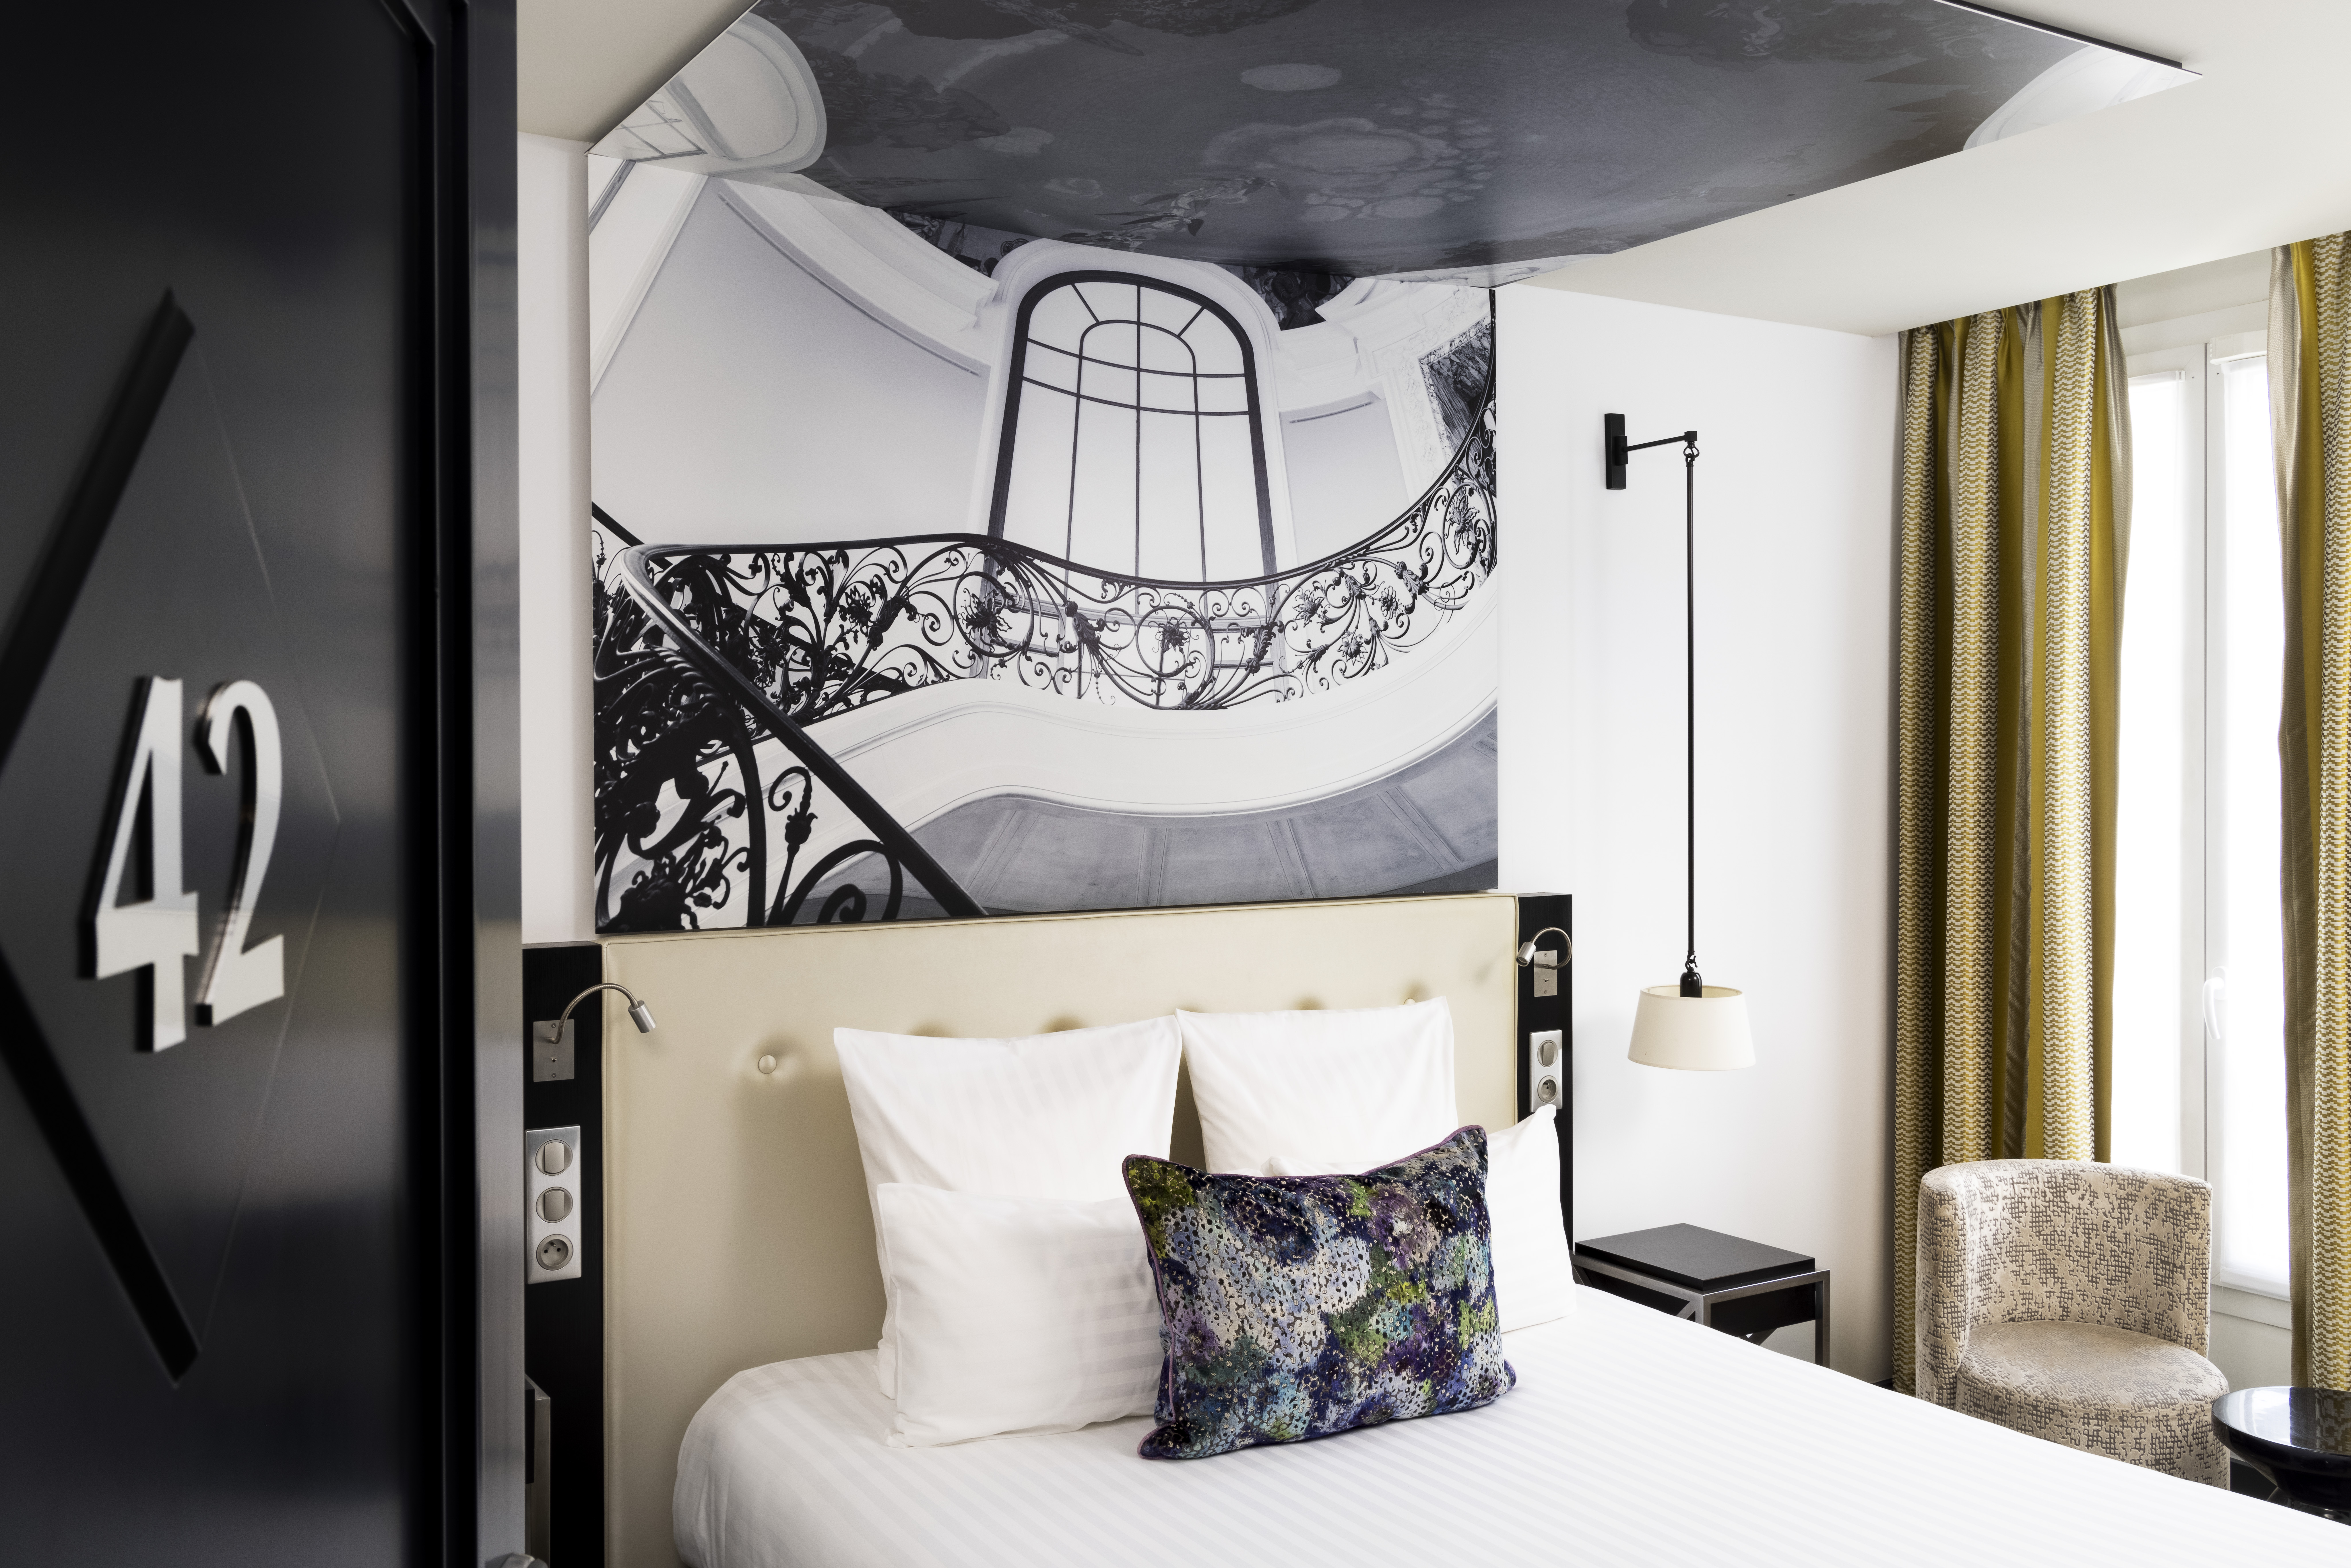 723/Gustave/chambre_/Cls/HOTEL_GUSTAVE_-_Classique_-_1.jpg